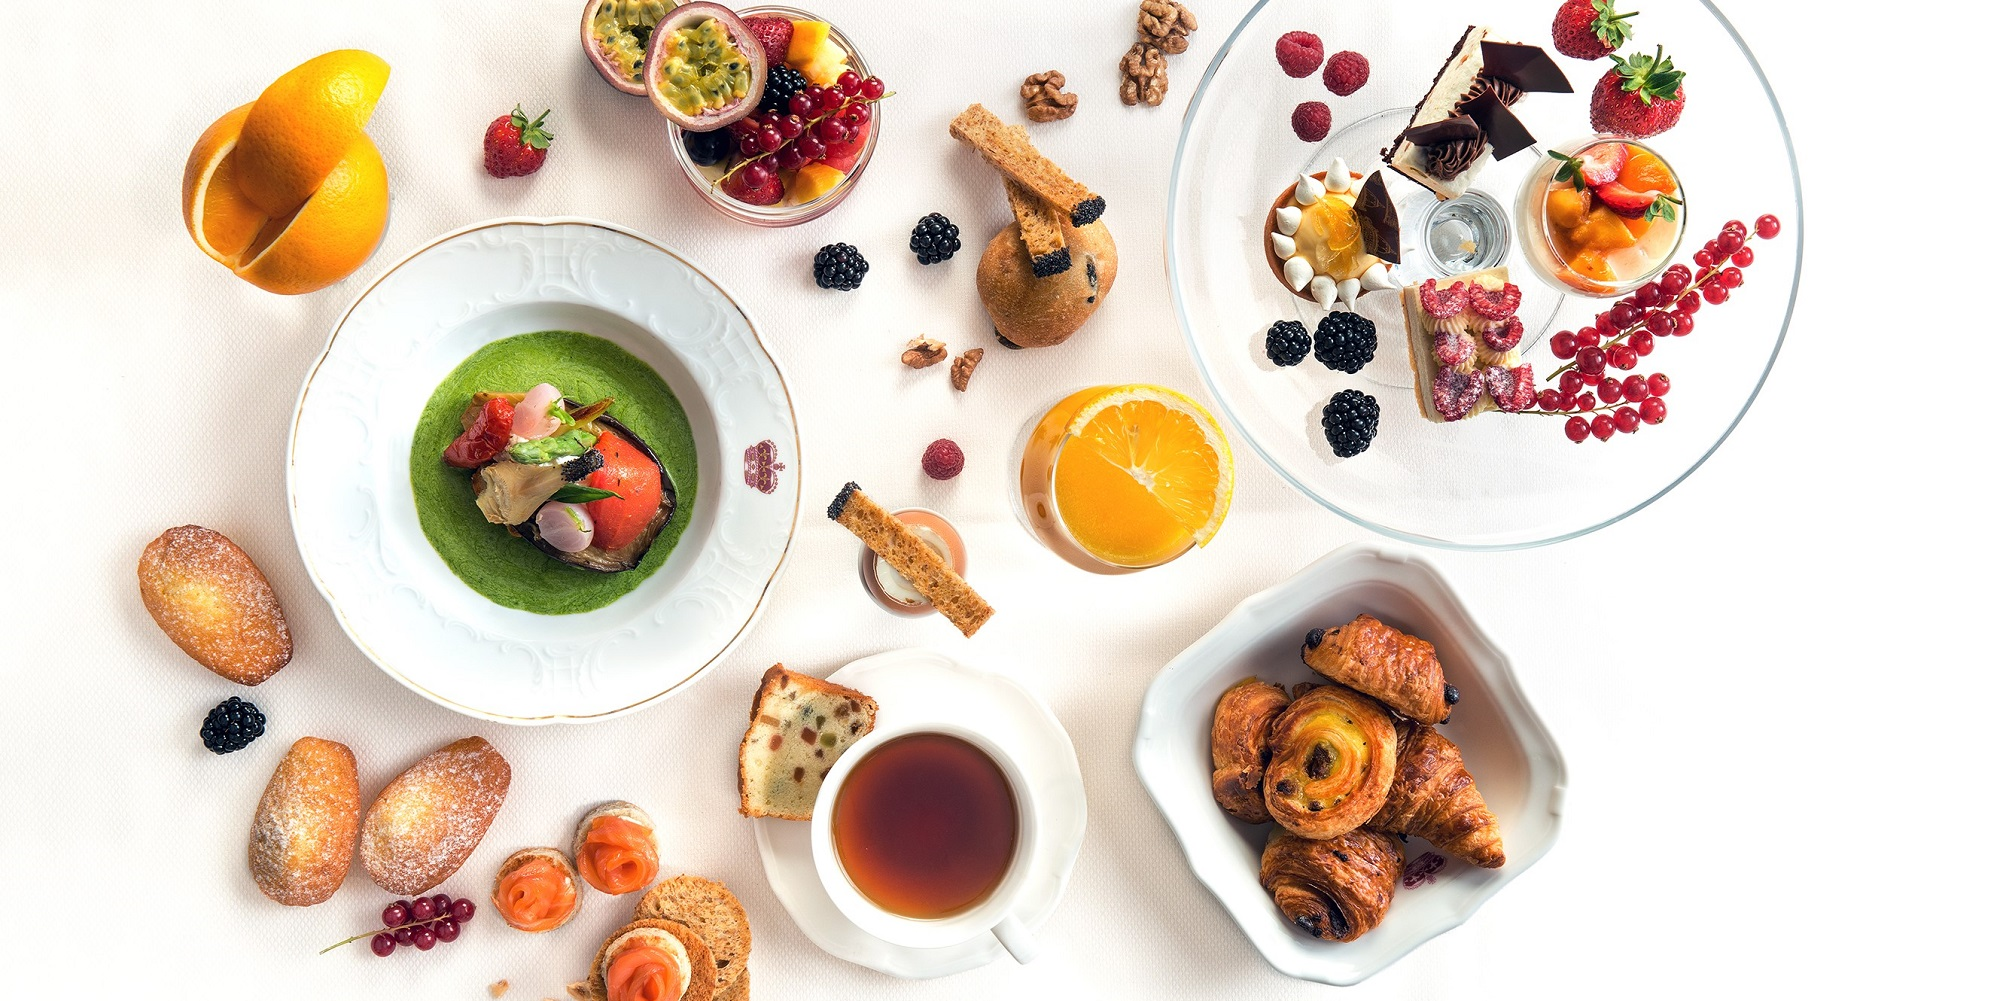 Brunch InterContinental Carlton Cannes (06400 Cannes)